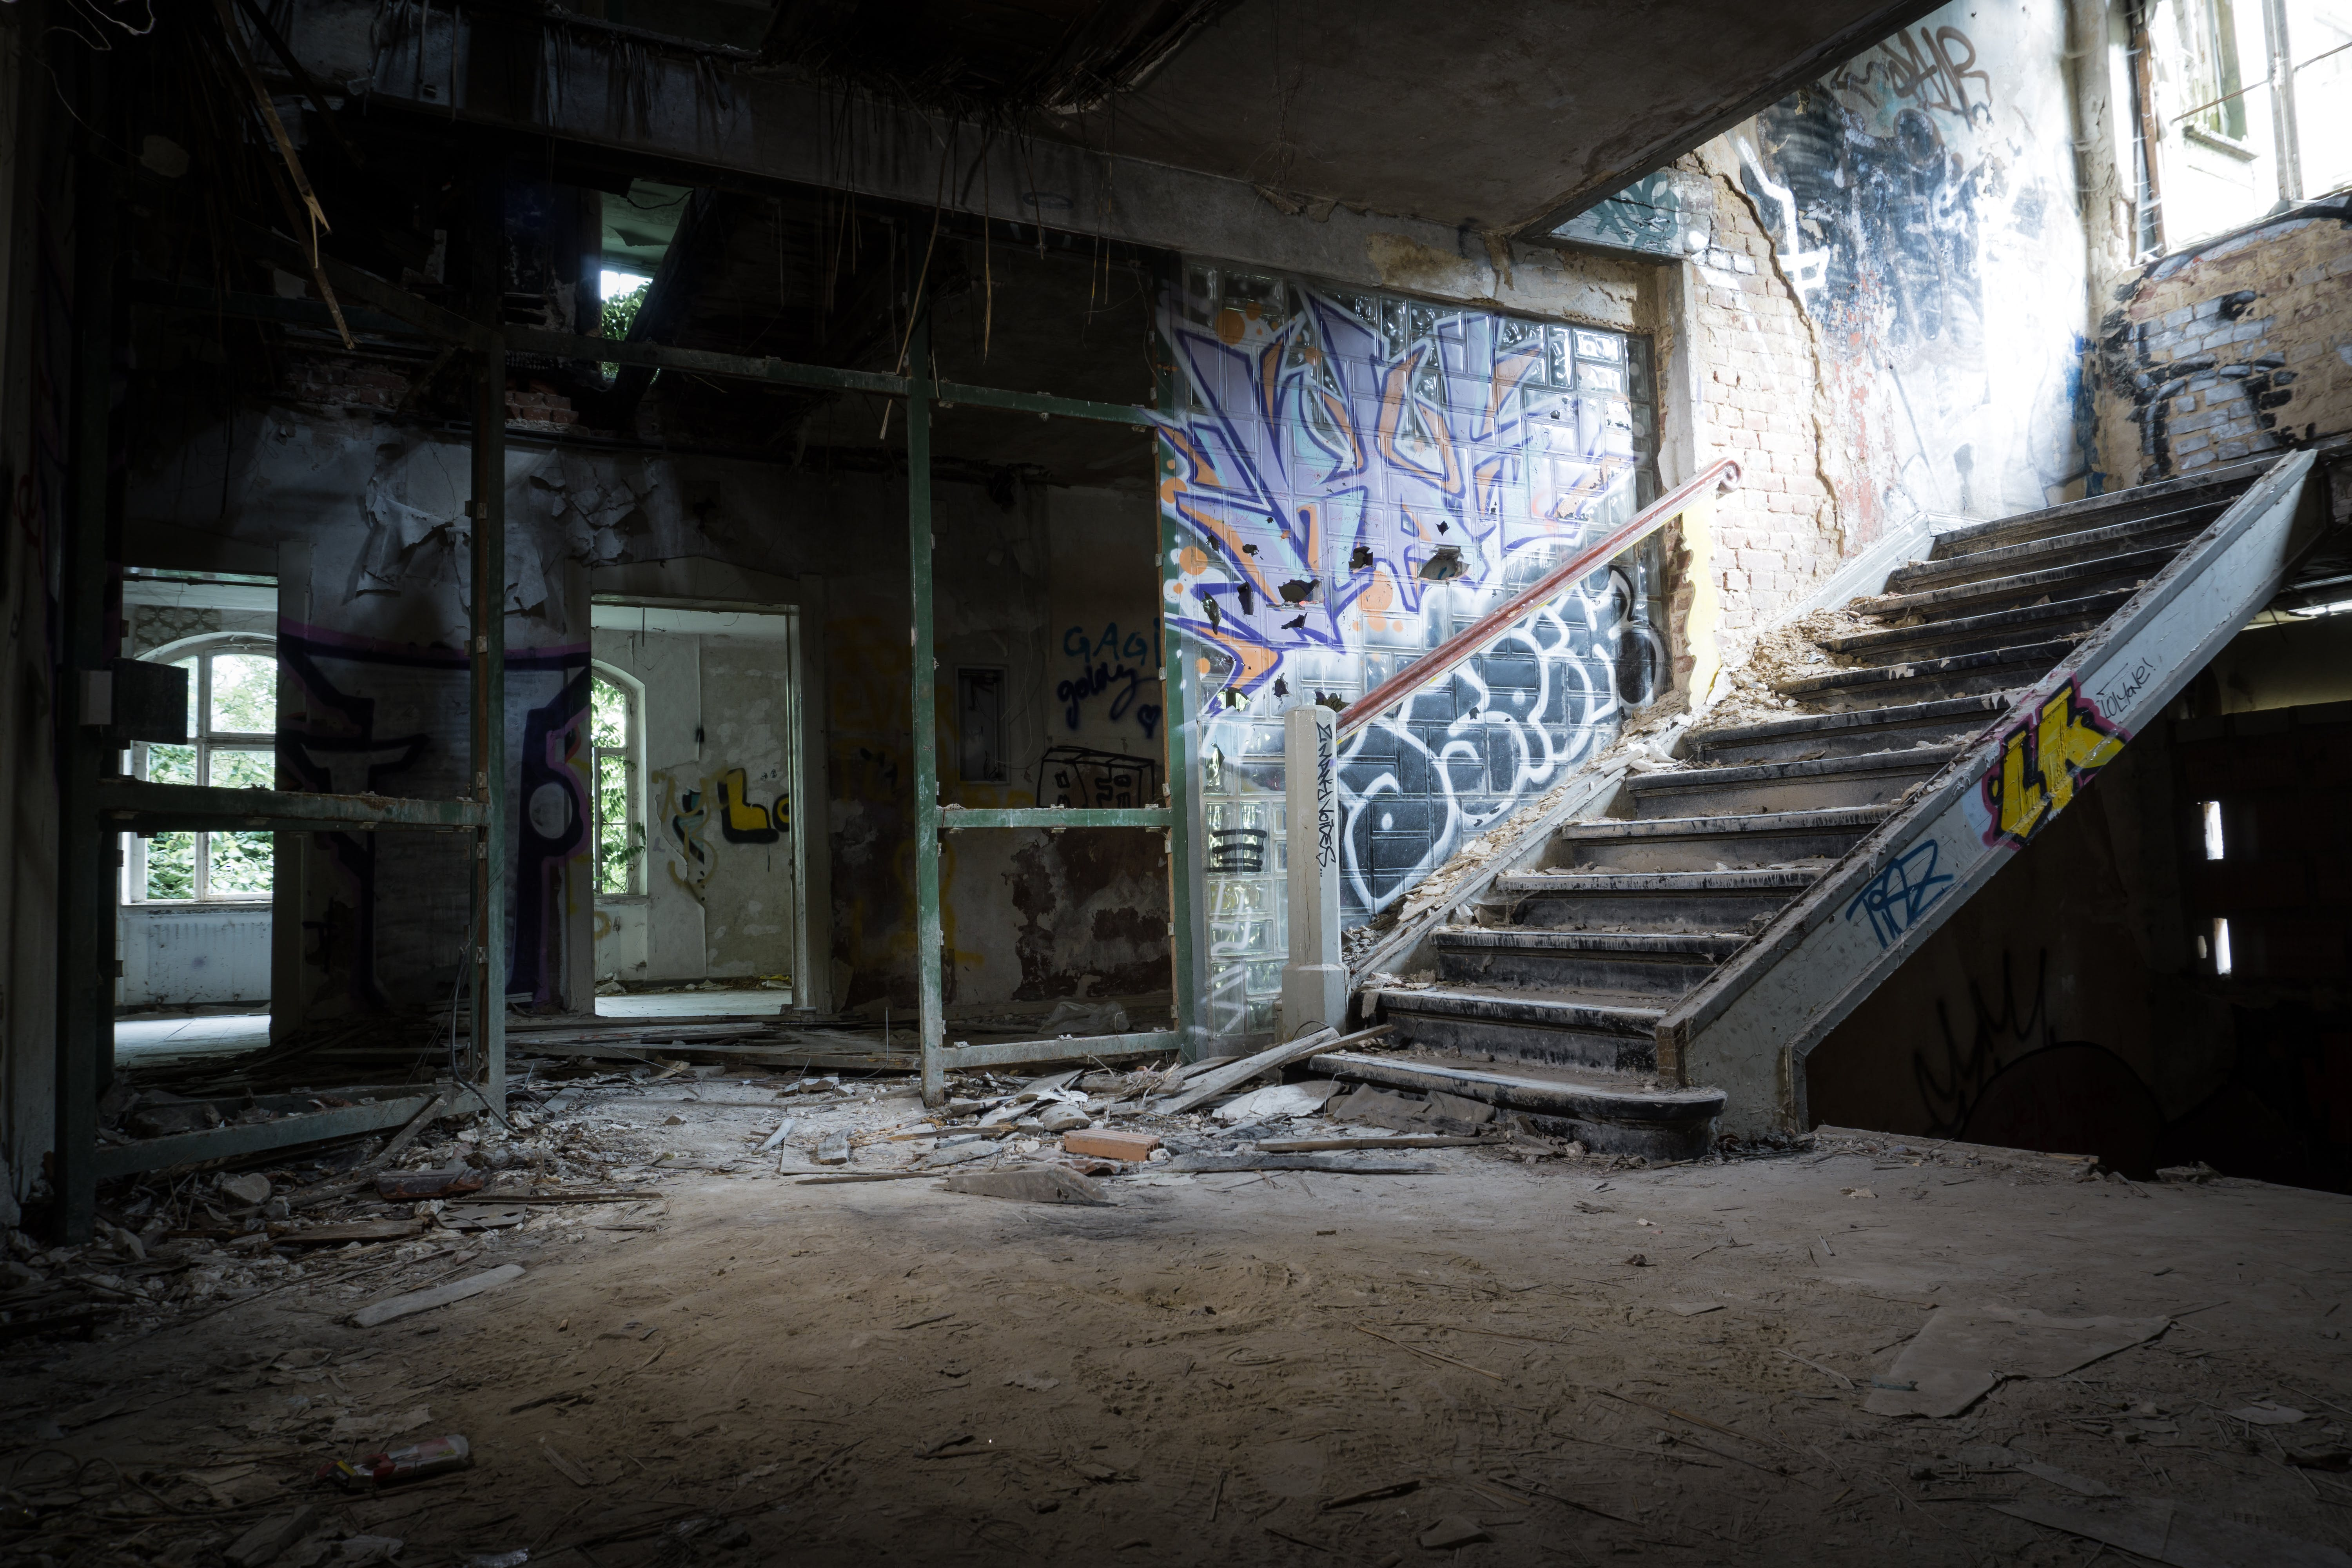 Graffiti Painted on Wall in Abandoned Building